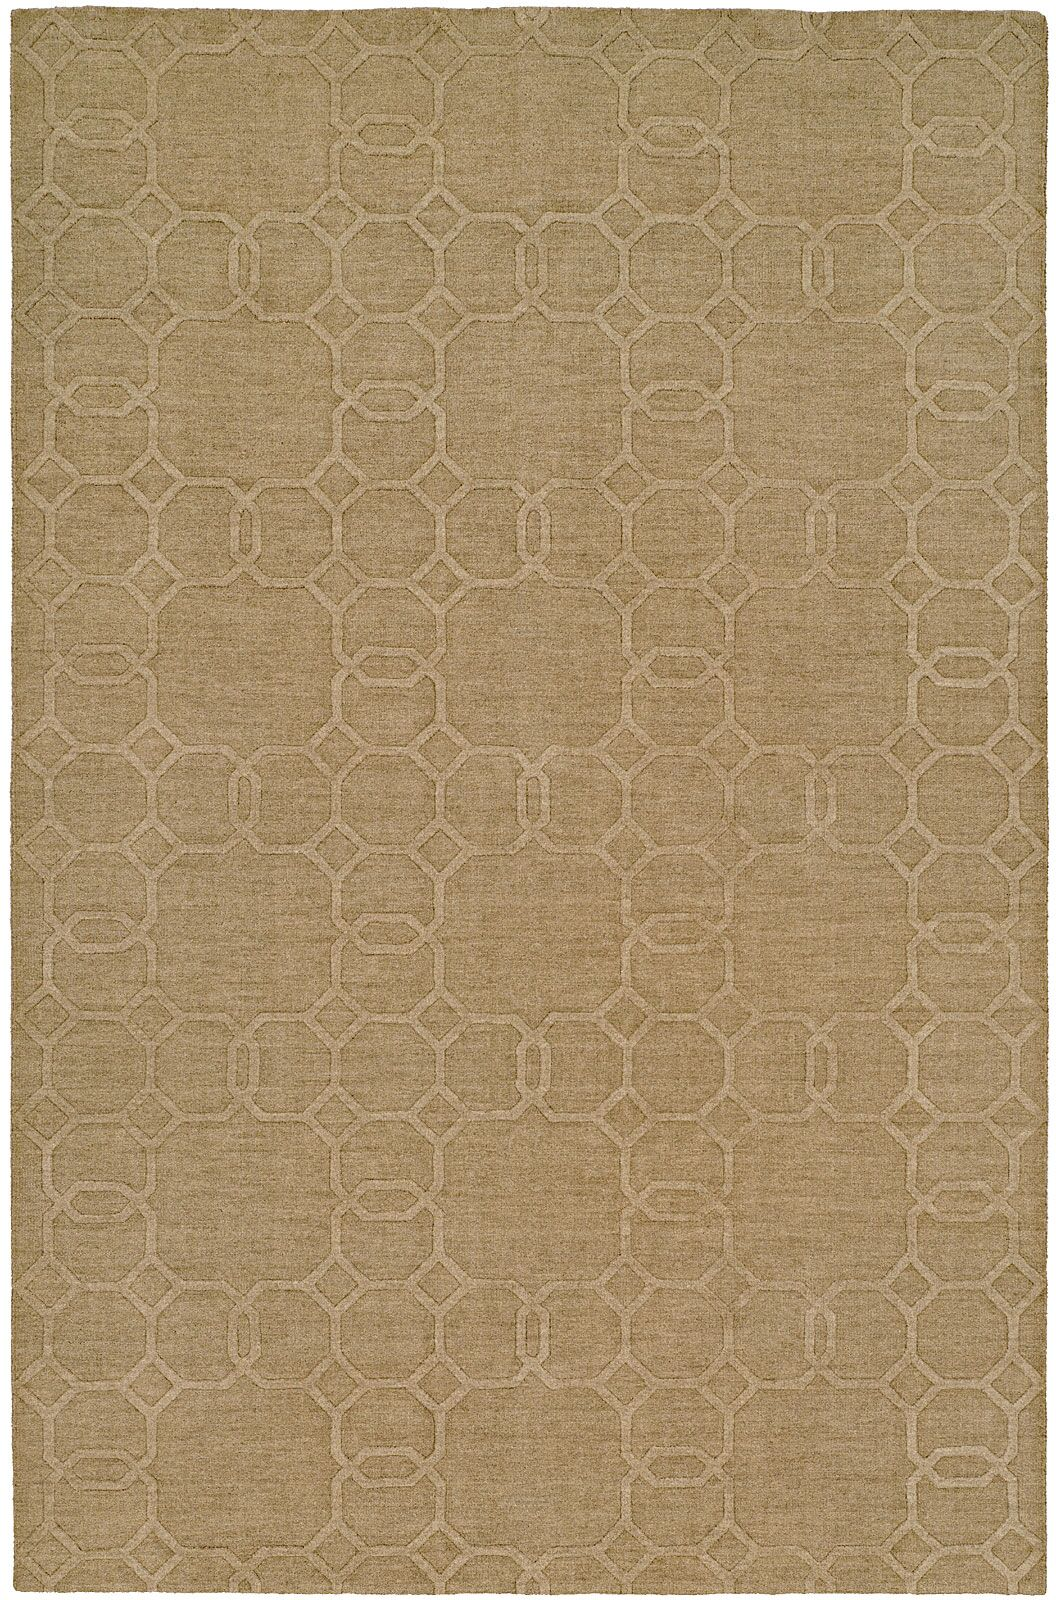 Buch Hand-Woven Beige Area Rug Rug Size: 6' x 9'